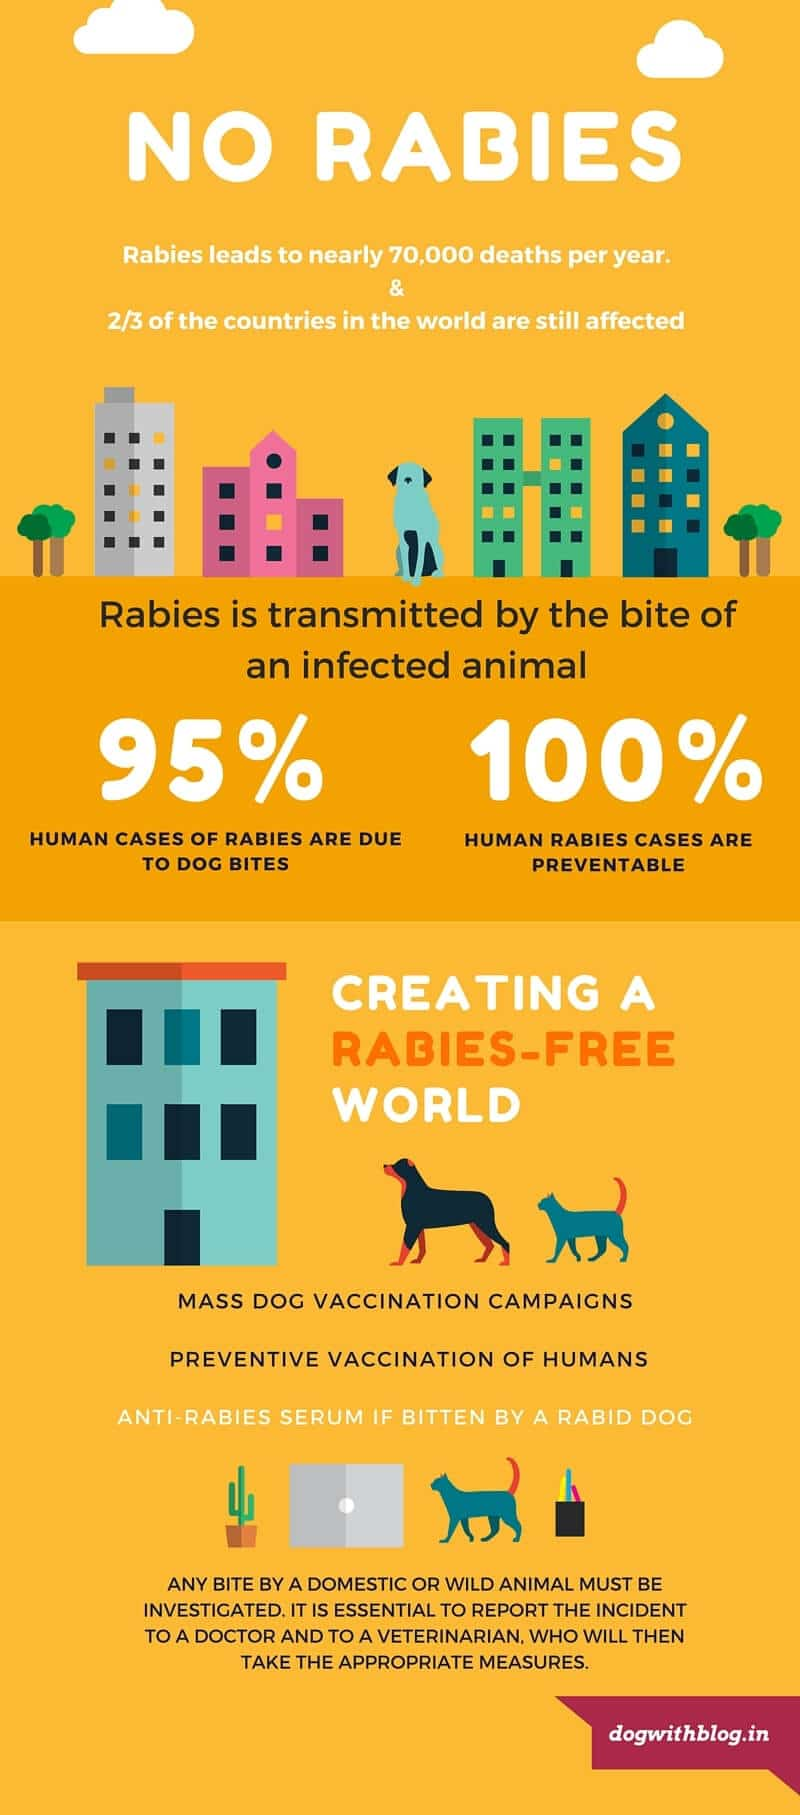 Rabies Infographic facts